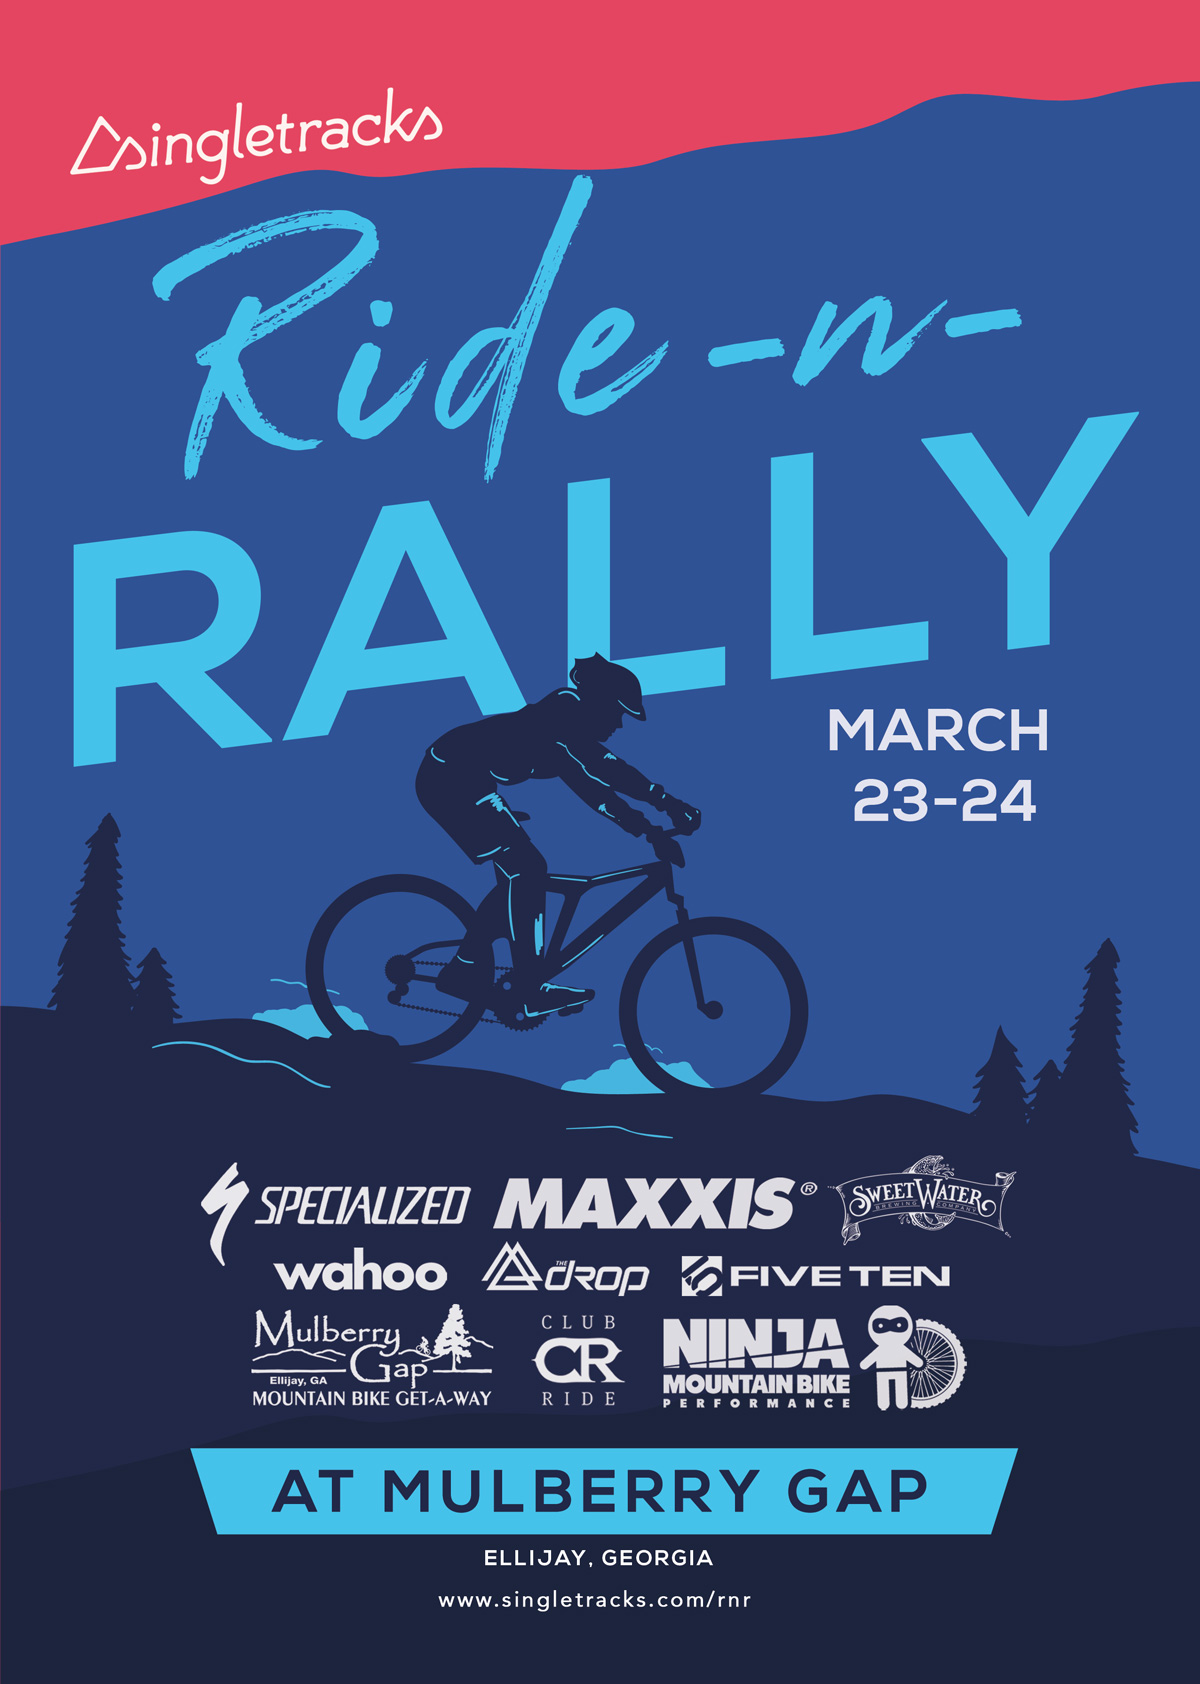 304d77f0fbc Register for the Singletracks Ride-n-Rally, March 23-24, 2019 ...